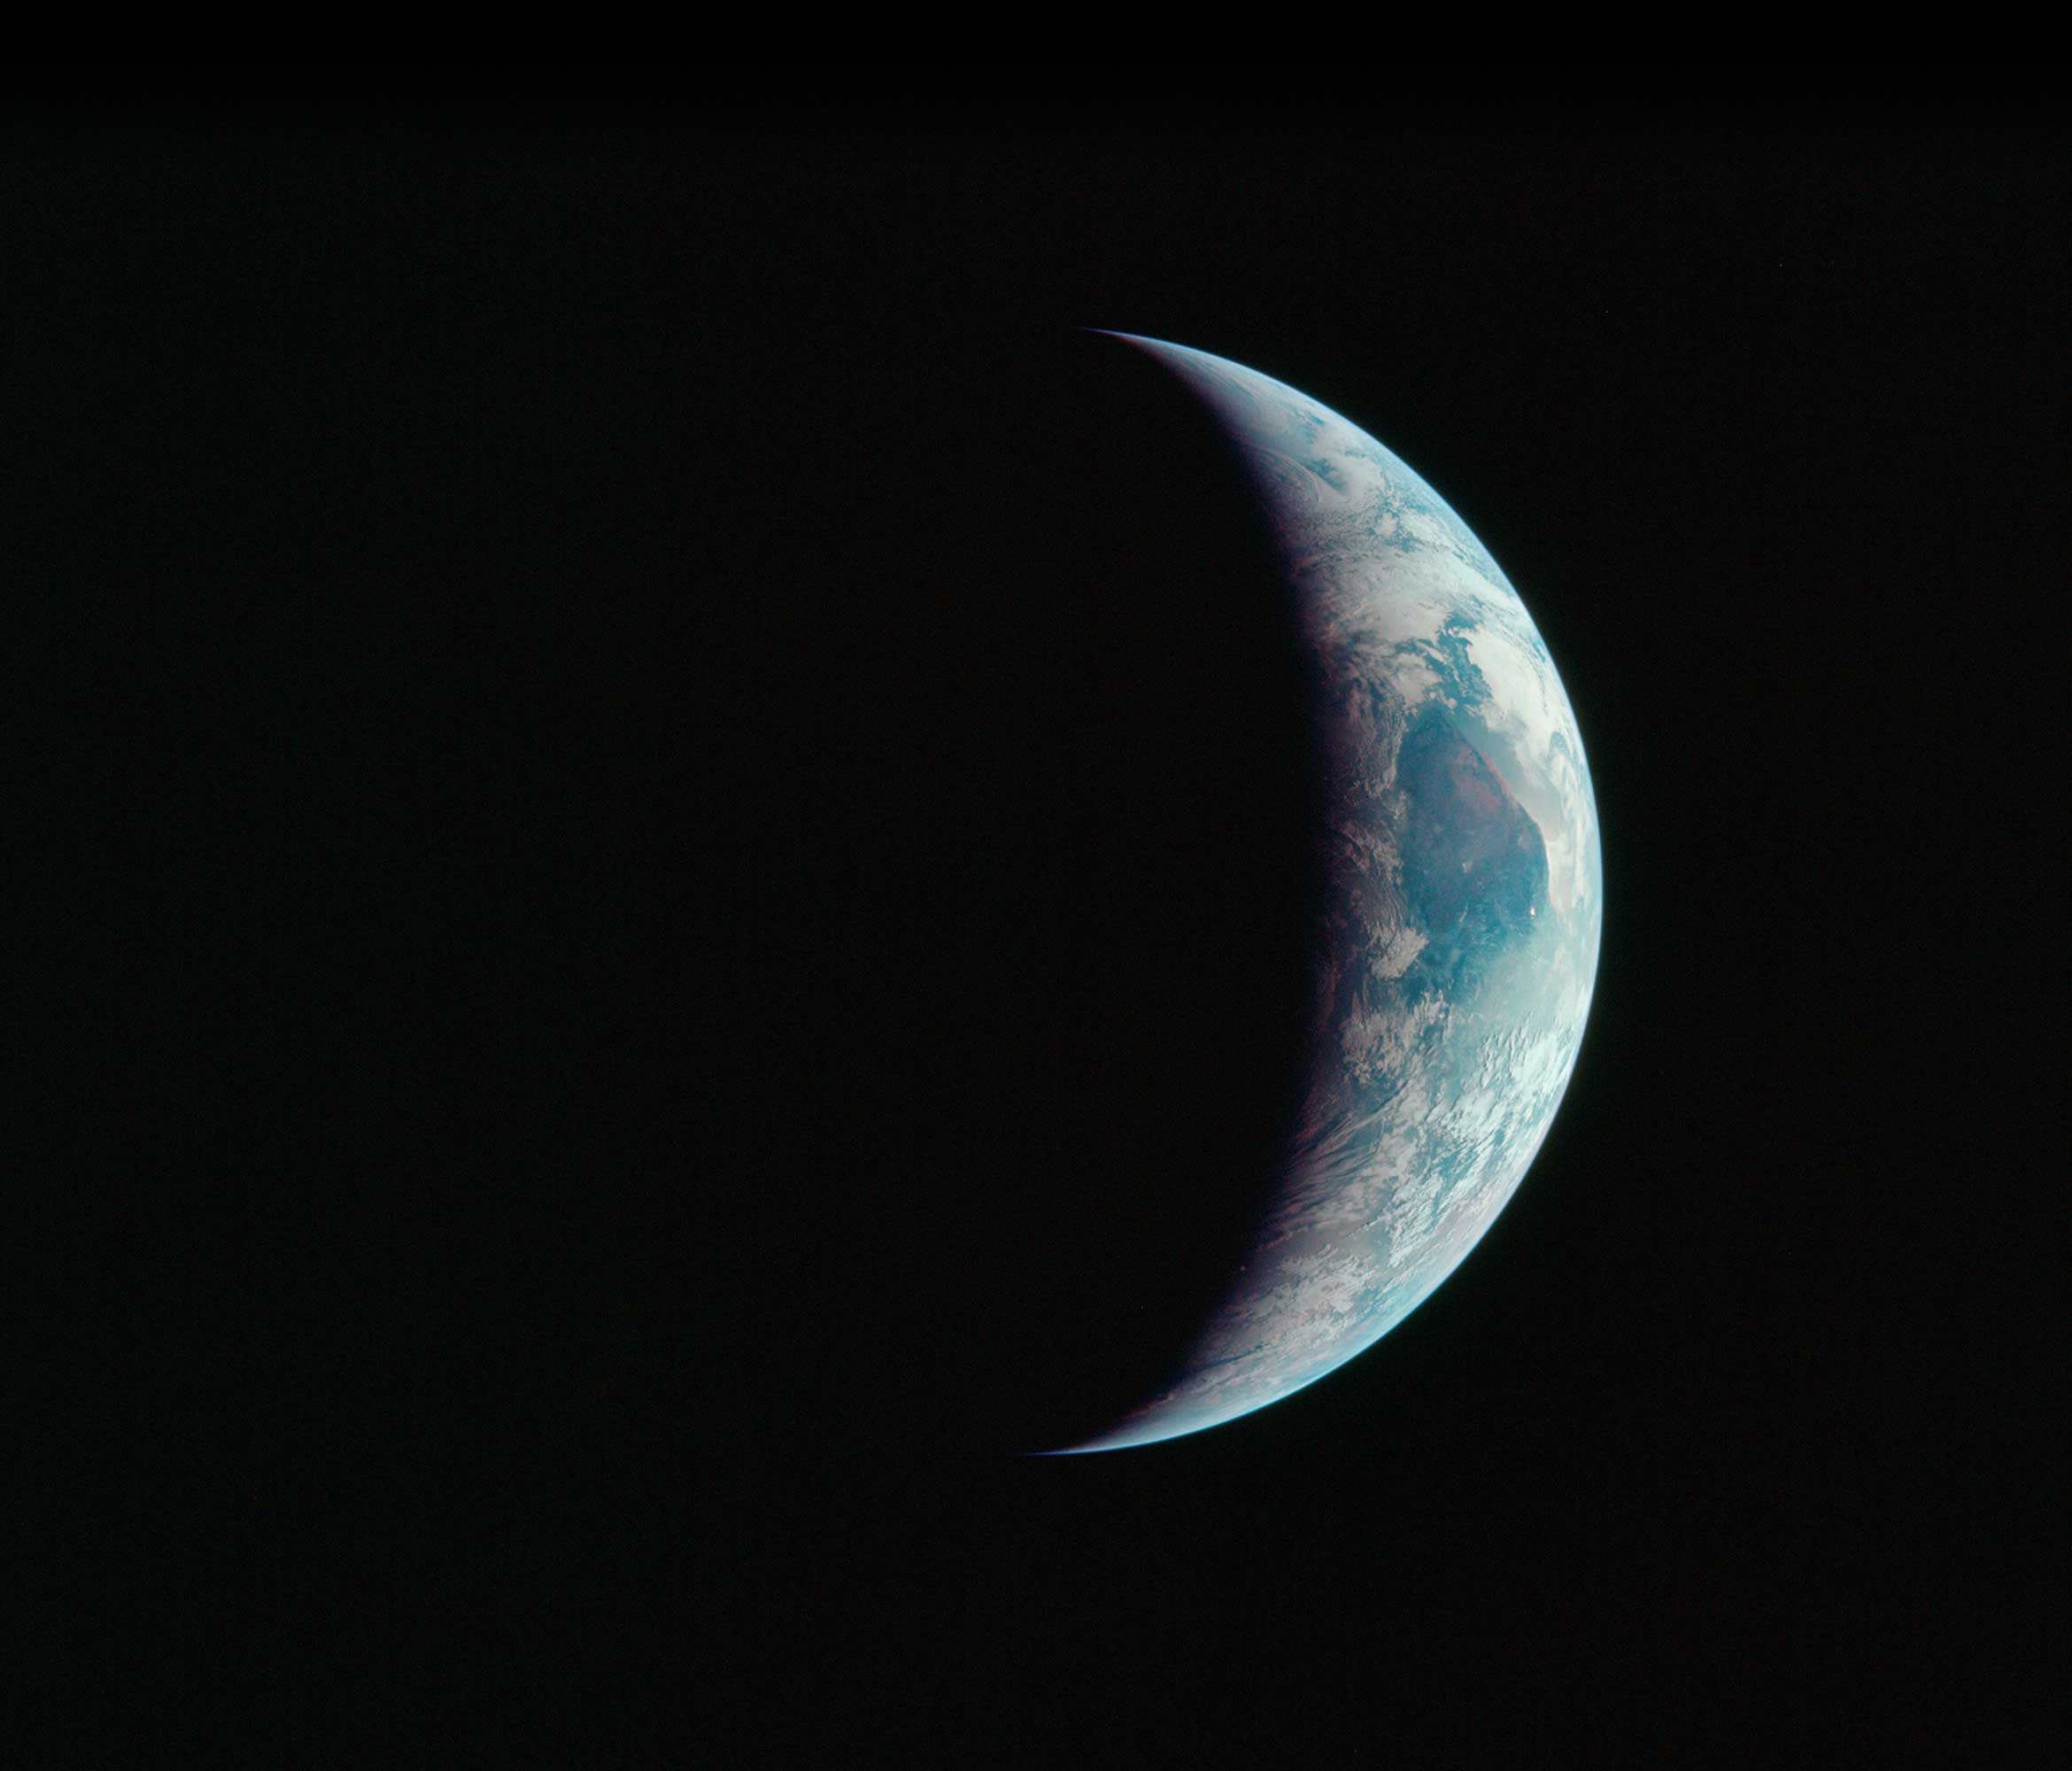 One-third of Earth's sphere as seen from Apollo 11 spacecraft